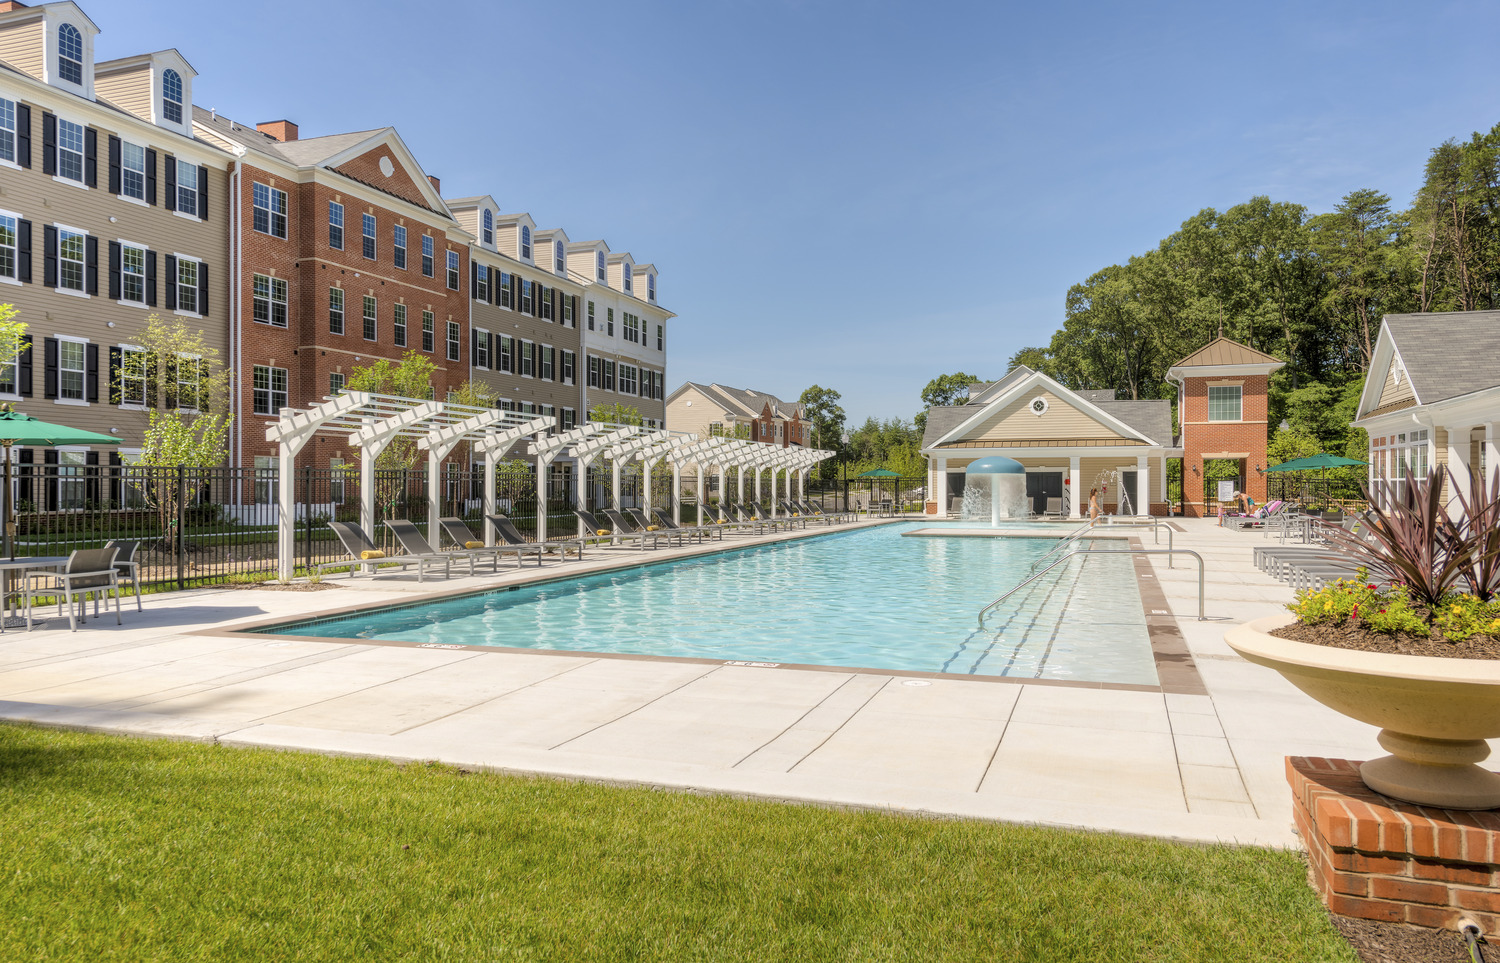 CBG builds Creekstone Village Apartments, a 193-Unit Affordable Garden-Style Apartment Community in Pasadena, MD - Image #2